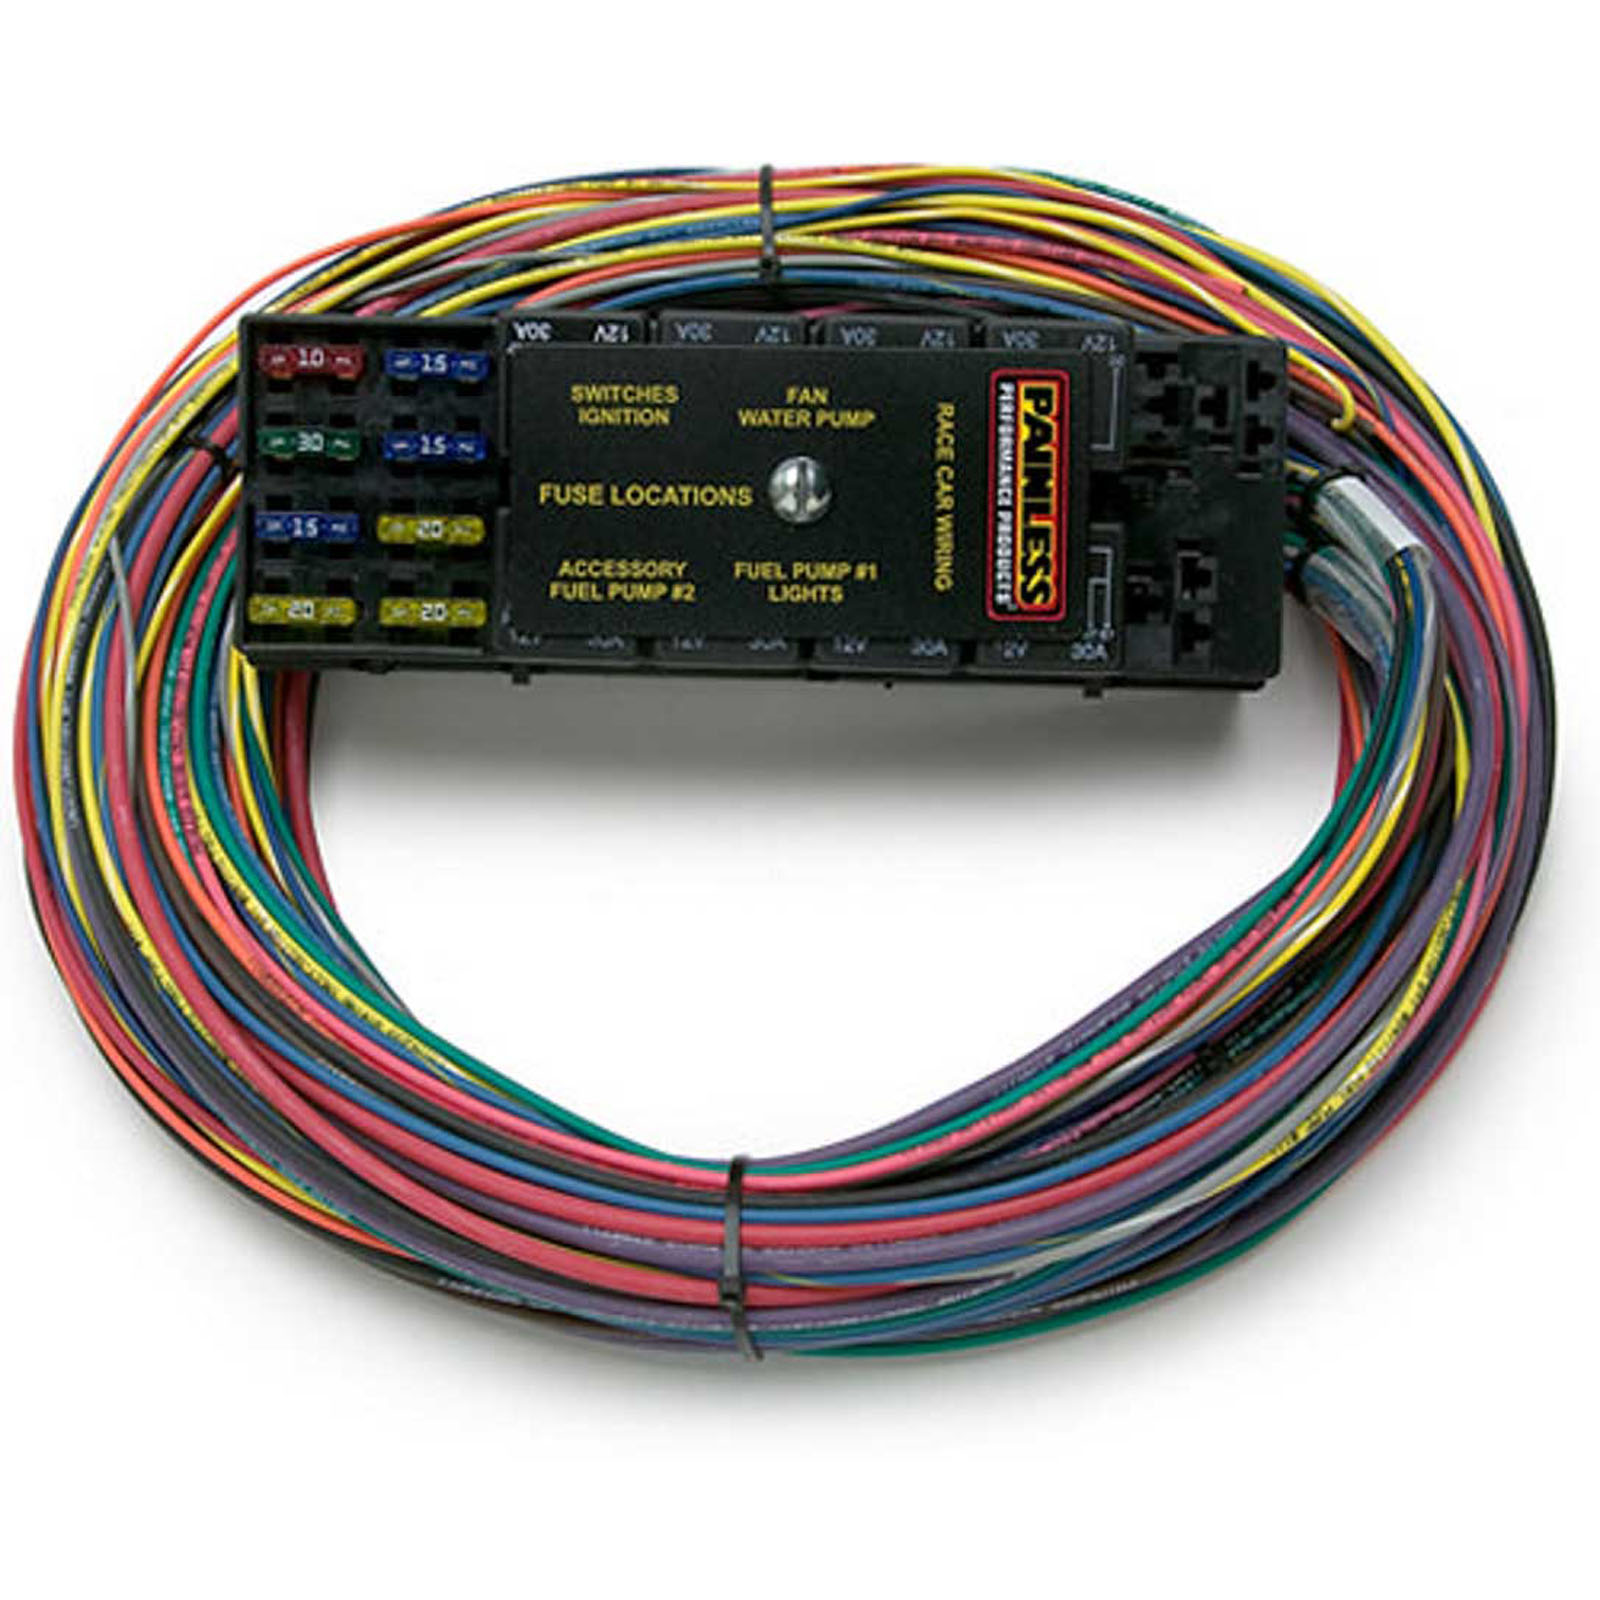 race car wiring harness painless 50003 schematic diagram Painless Wiring Com painless wiring harness racing wiring diagram painless wiring color painless wiring 50001 10 circuit race harness